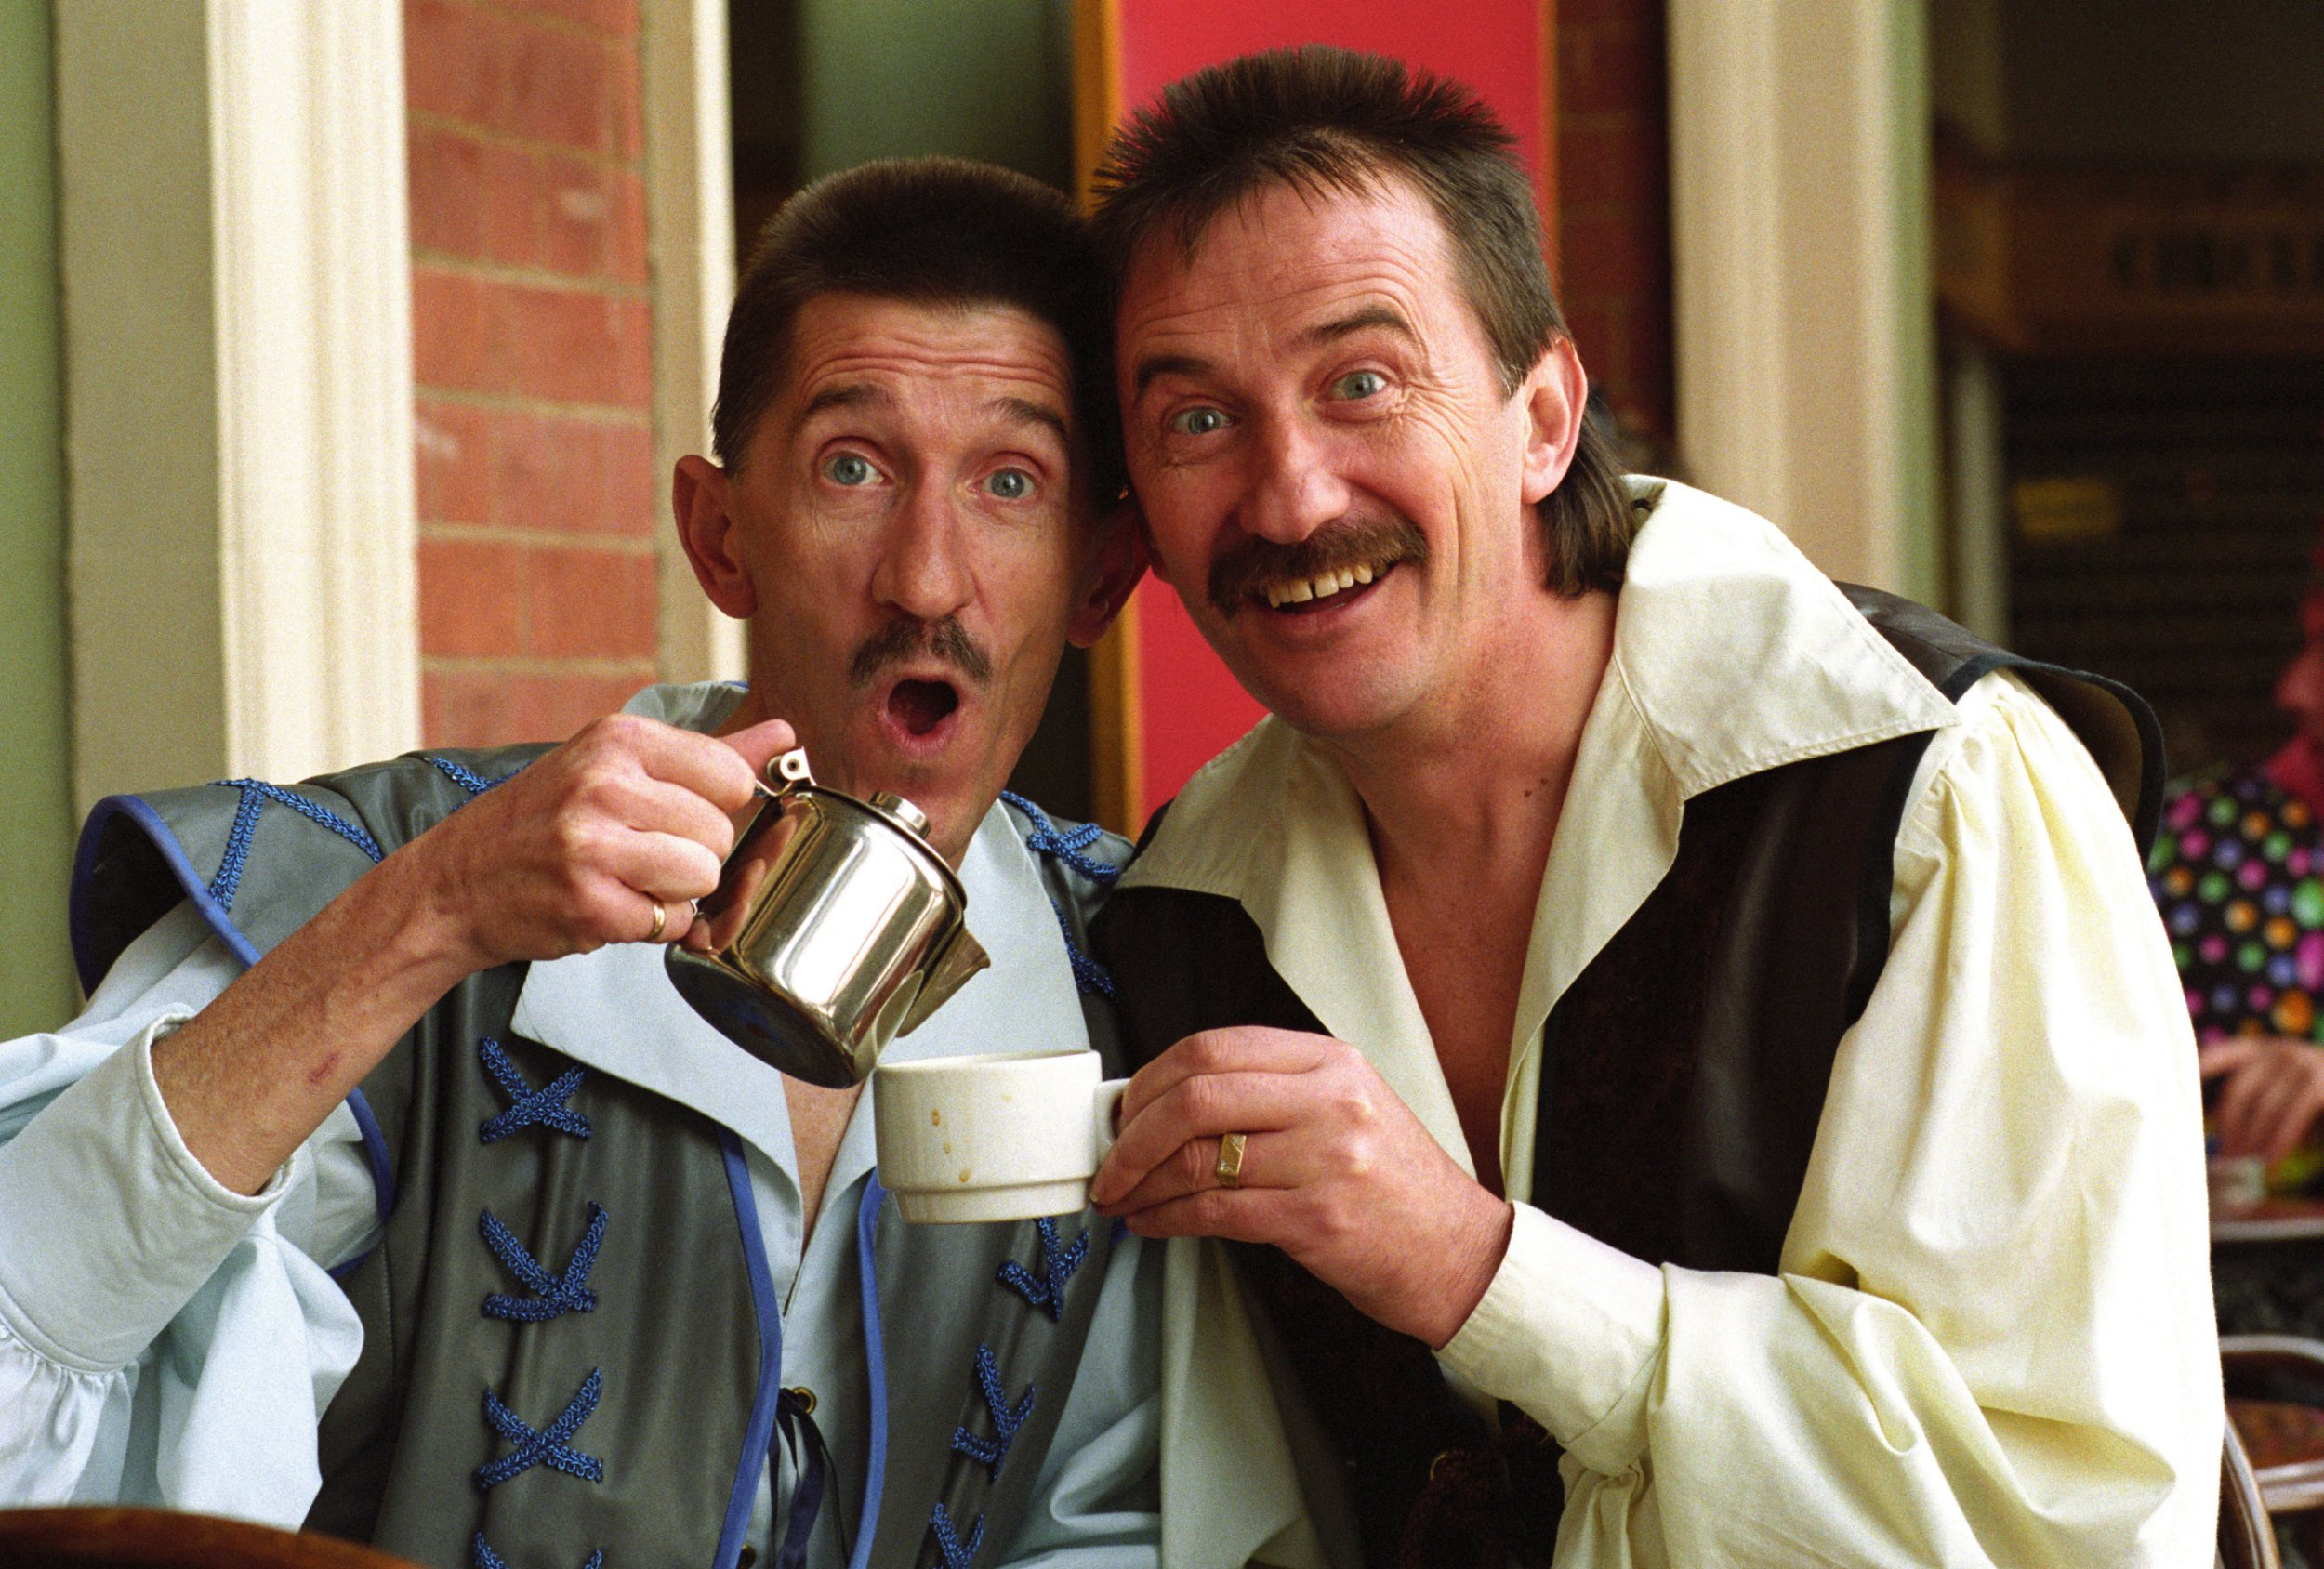 Mandatory Credit: Photo by David Bagnall/REX/Shutterstock (1915399ar) The Chuckle Brothers Paul and Barry Elliot in costume for the pantomime Snow White at the Grand Theatre, Wolverhampton. Various - 1993